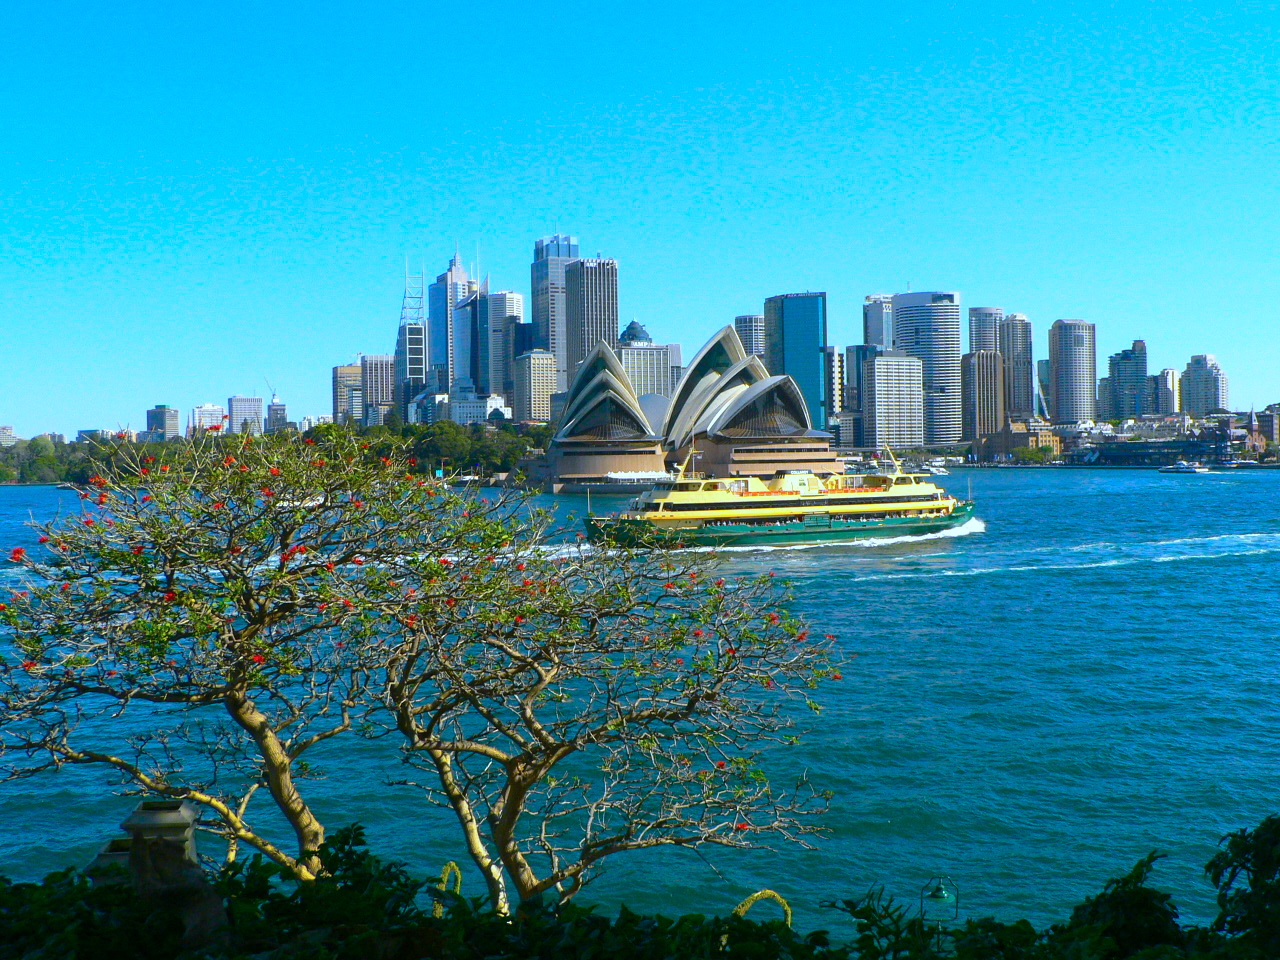 A Rare View of Sydney Opera House from Admiralty House, Sydney, taken in 2009 從悉尼的總督府看悉尼歌劇院,攝於2009年。